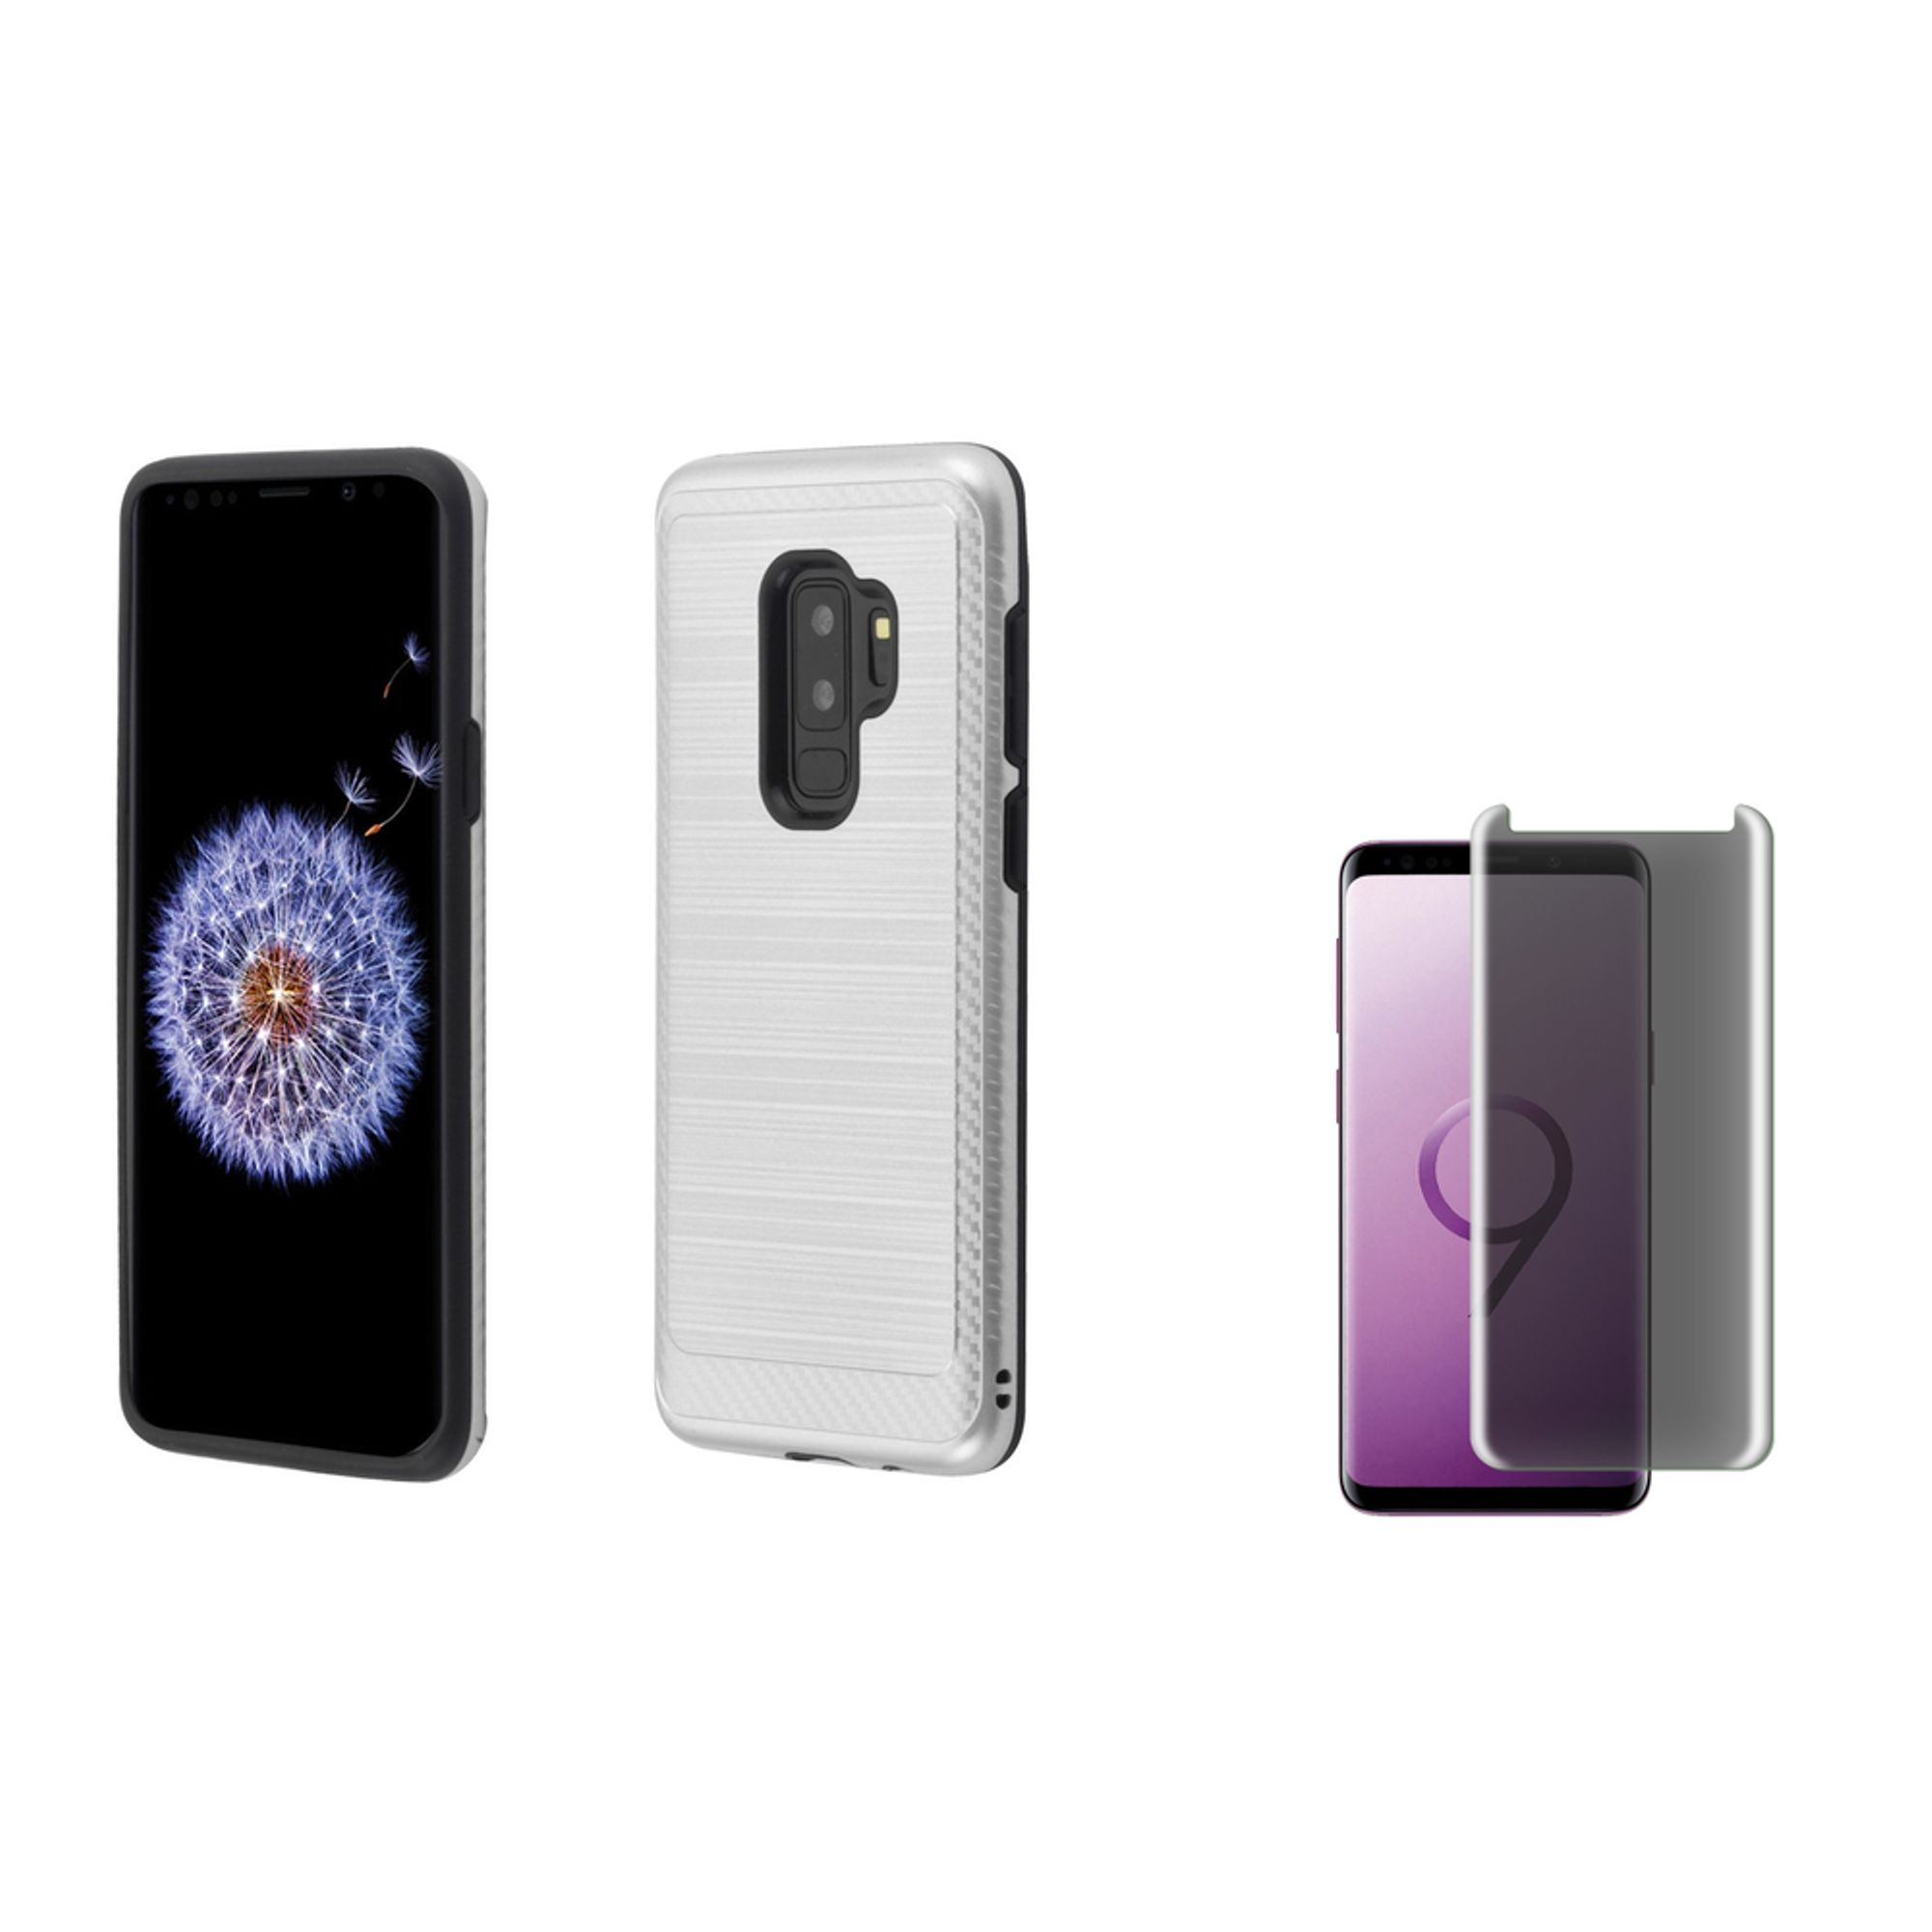 Galaxy s9 plus case with screen protector privacy glass by Insten Carbon Fiber Dual Layer Hybrid Brushed with Card Slot Phone Case Cover For Samsung Galaxy S9 Plus S9+, Silver/Black